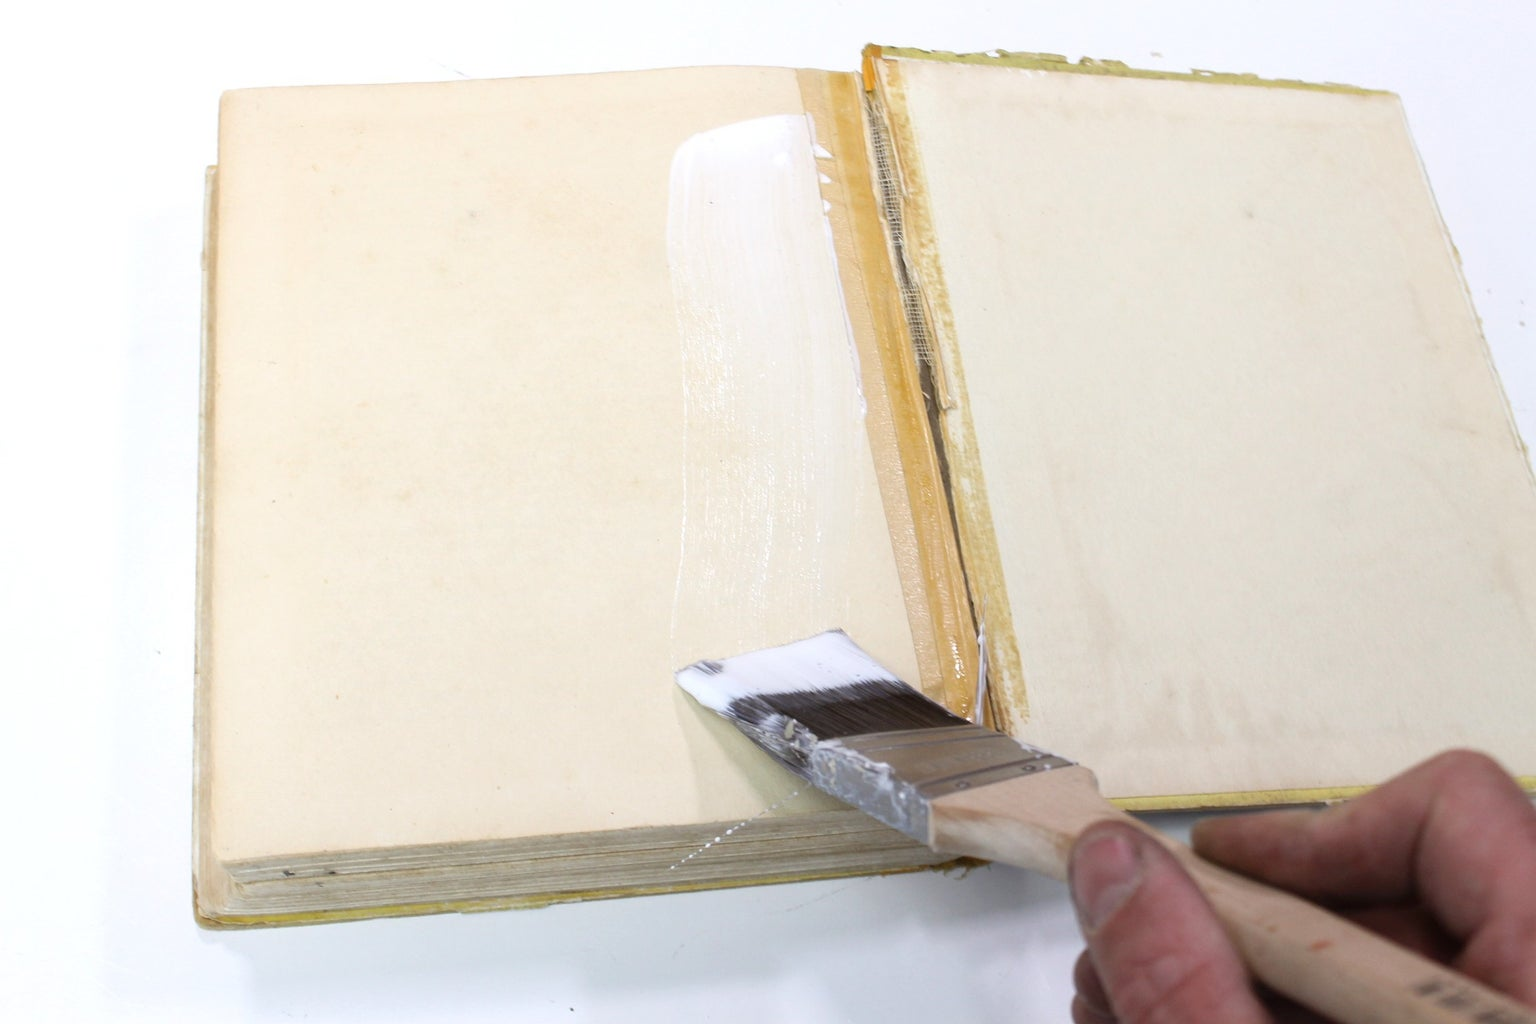 Gluing the Pages Together